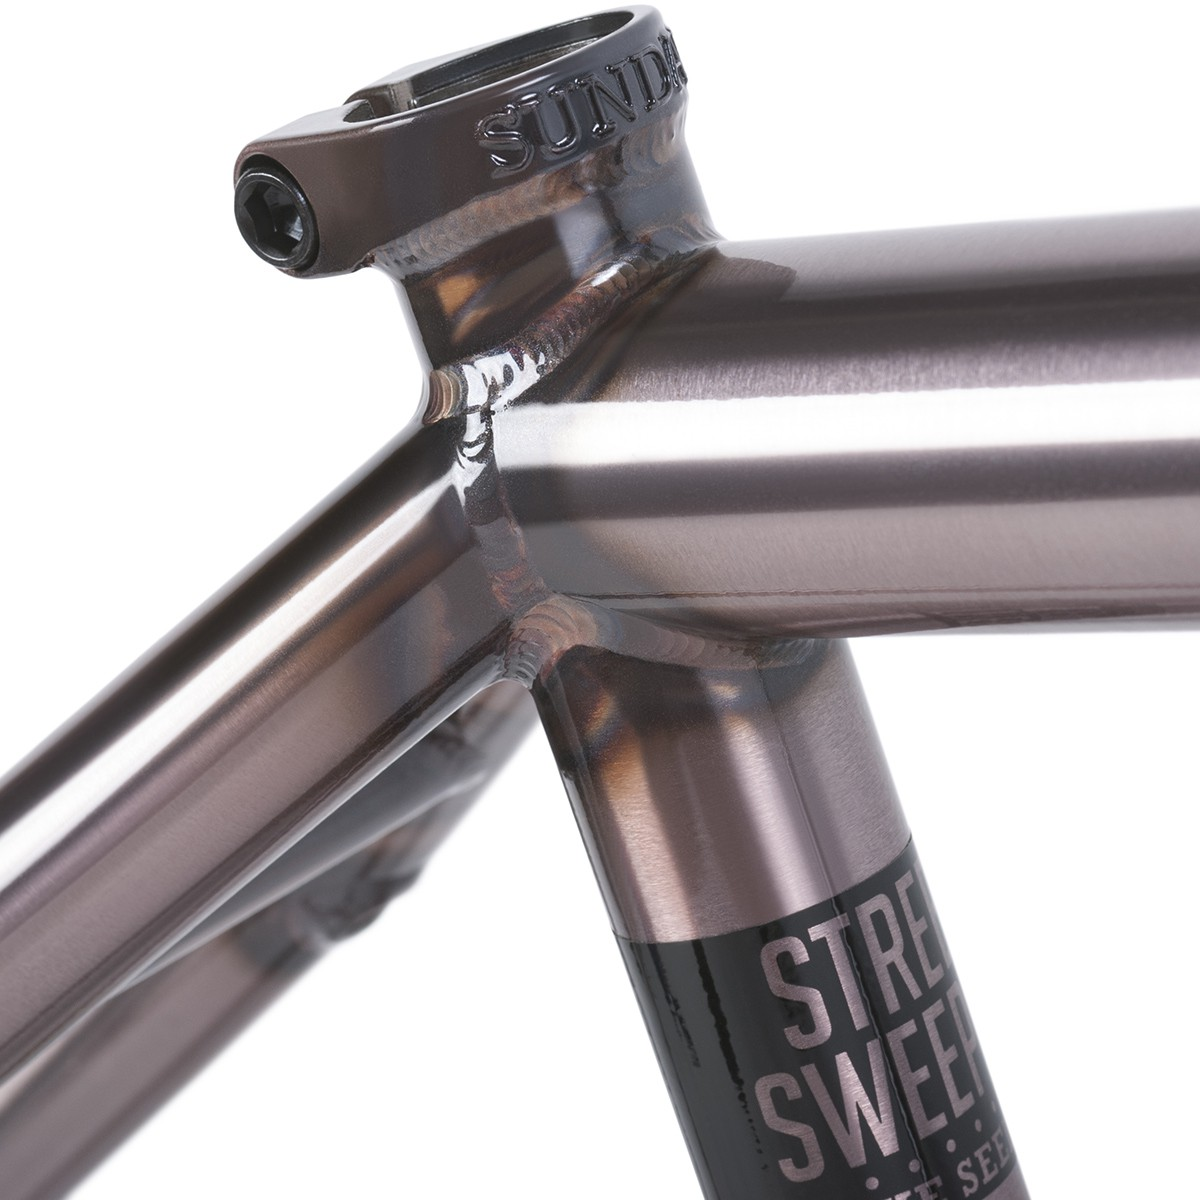 CADRE SUNDAY STREET SWEEPER TRANS ROSE GOLD